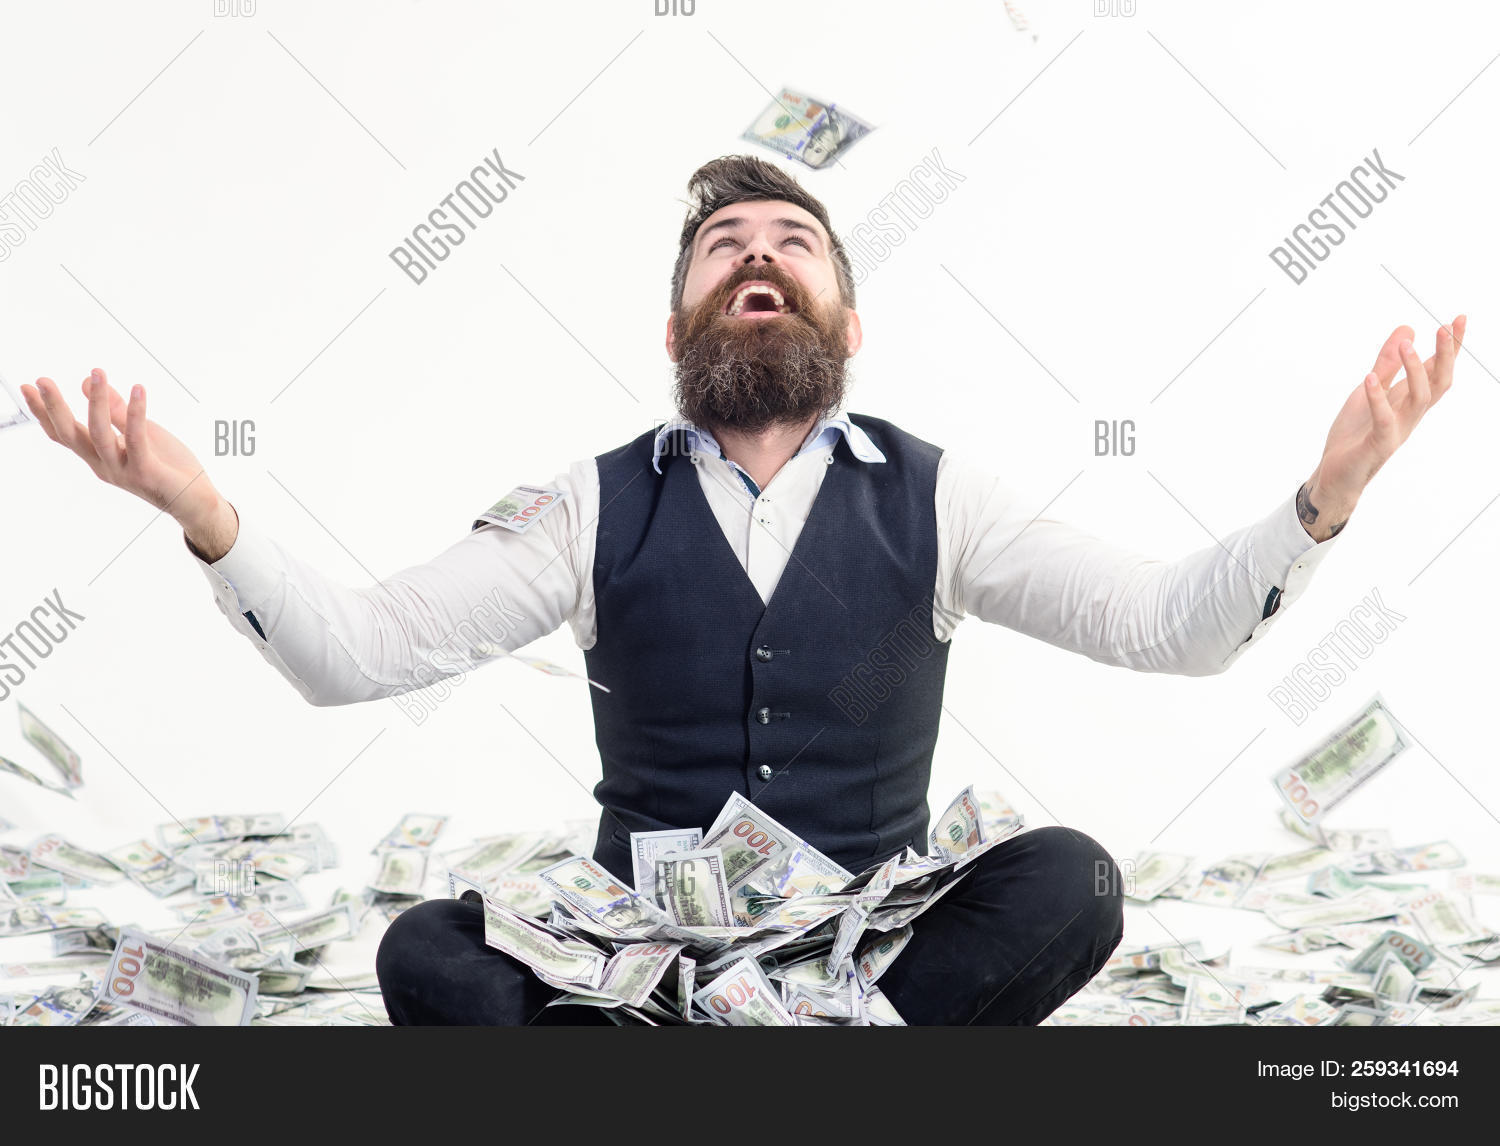 achievement,bank,banker,banking,banknote,beard,bearded,bills,bingo,bonus,business,businessman,cash,casino,currency,dividend,dollar,earn,economy,falling,finance,financial,fortune,free,freedom,fun,guy,happy,interest,investment,jackpot,lottery,man,market,men,millionaire,money,prize,profit,rain,reward,rich,salary,success,successful,suit,throw,wealth,winner